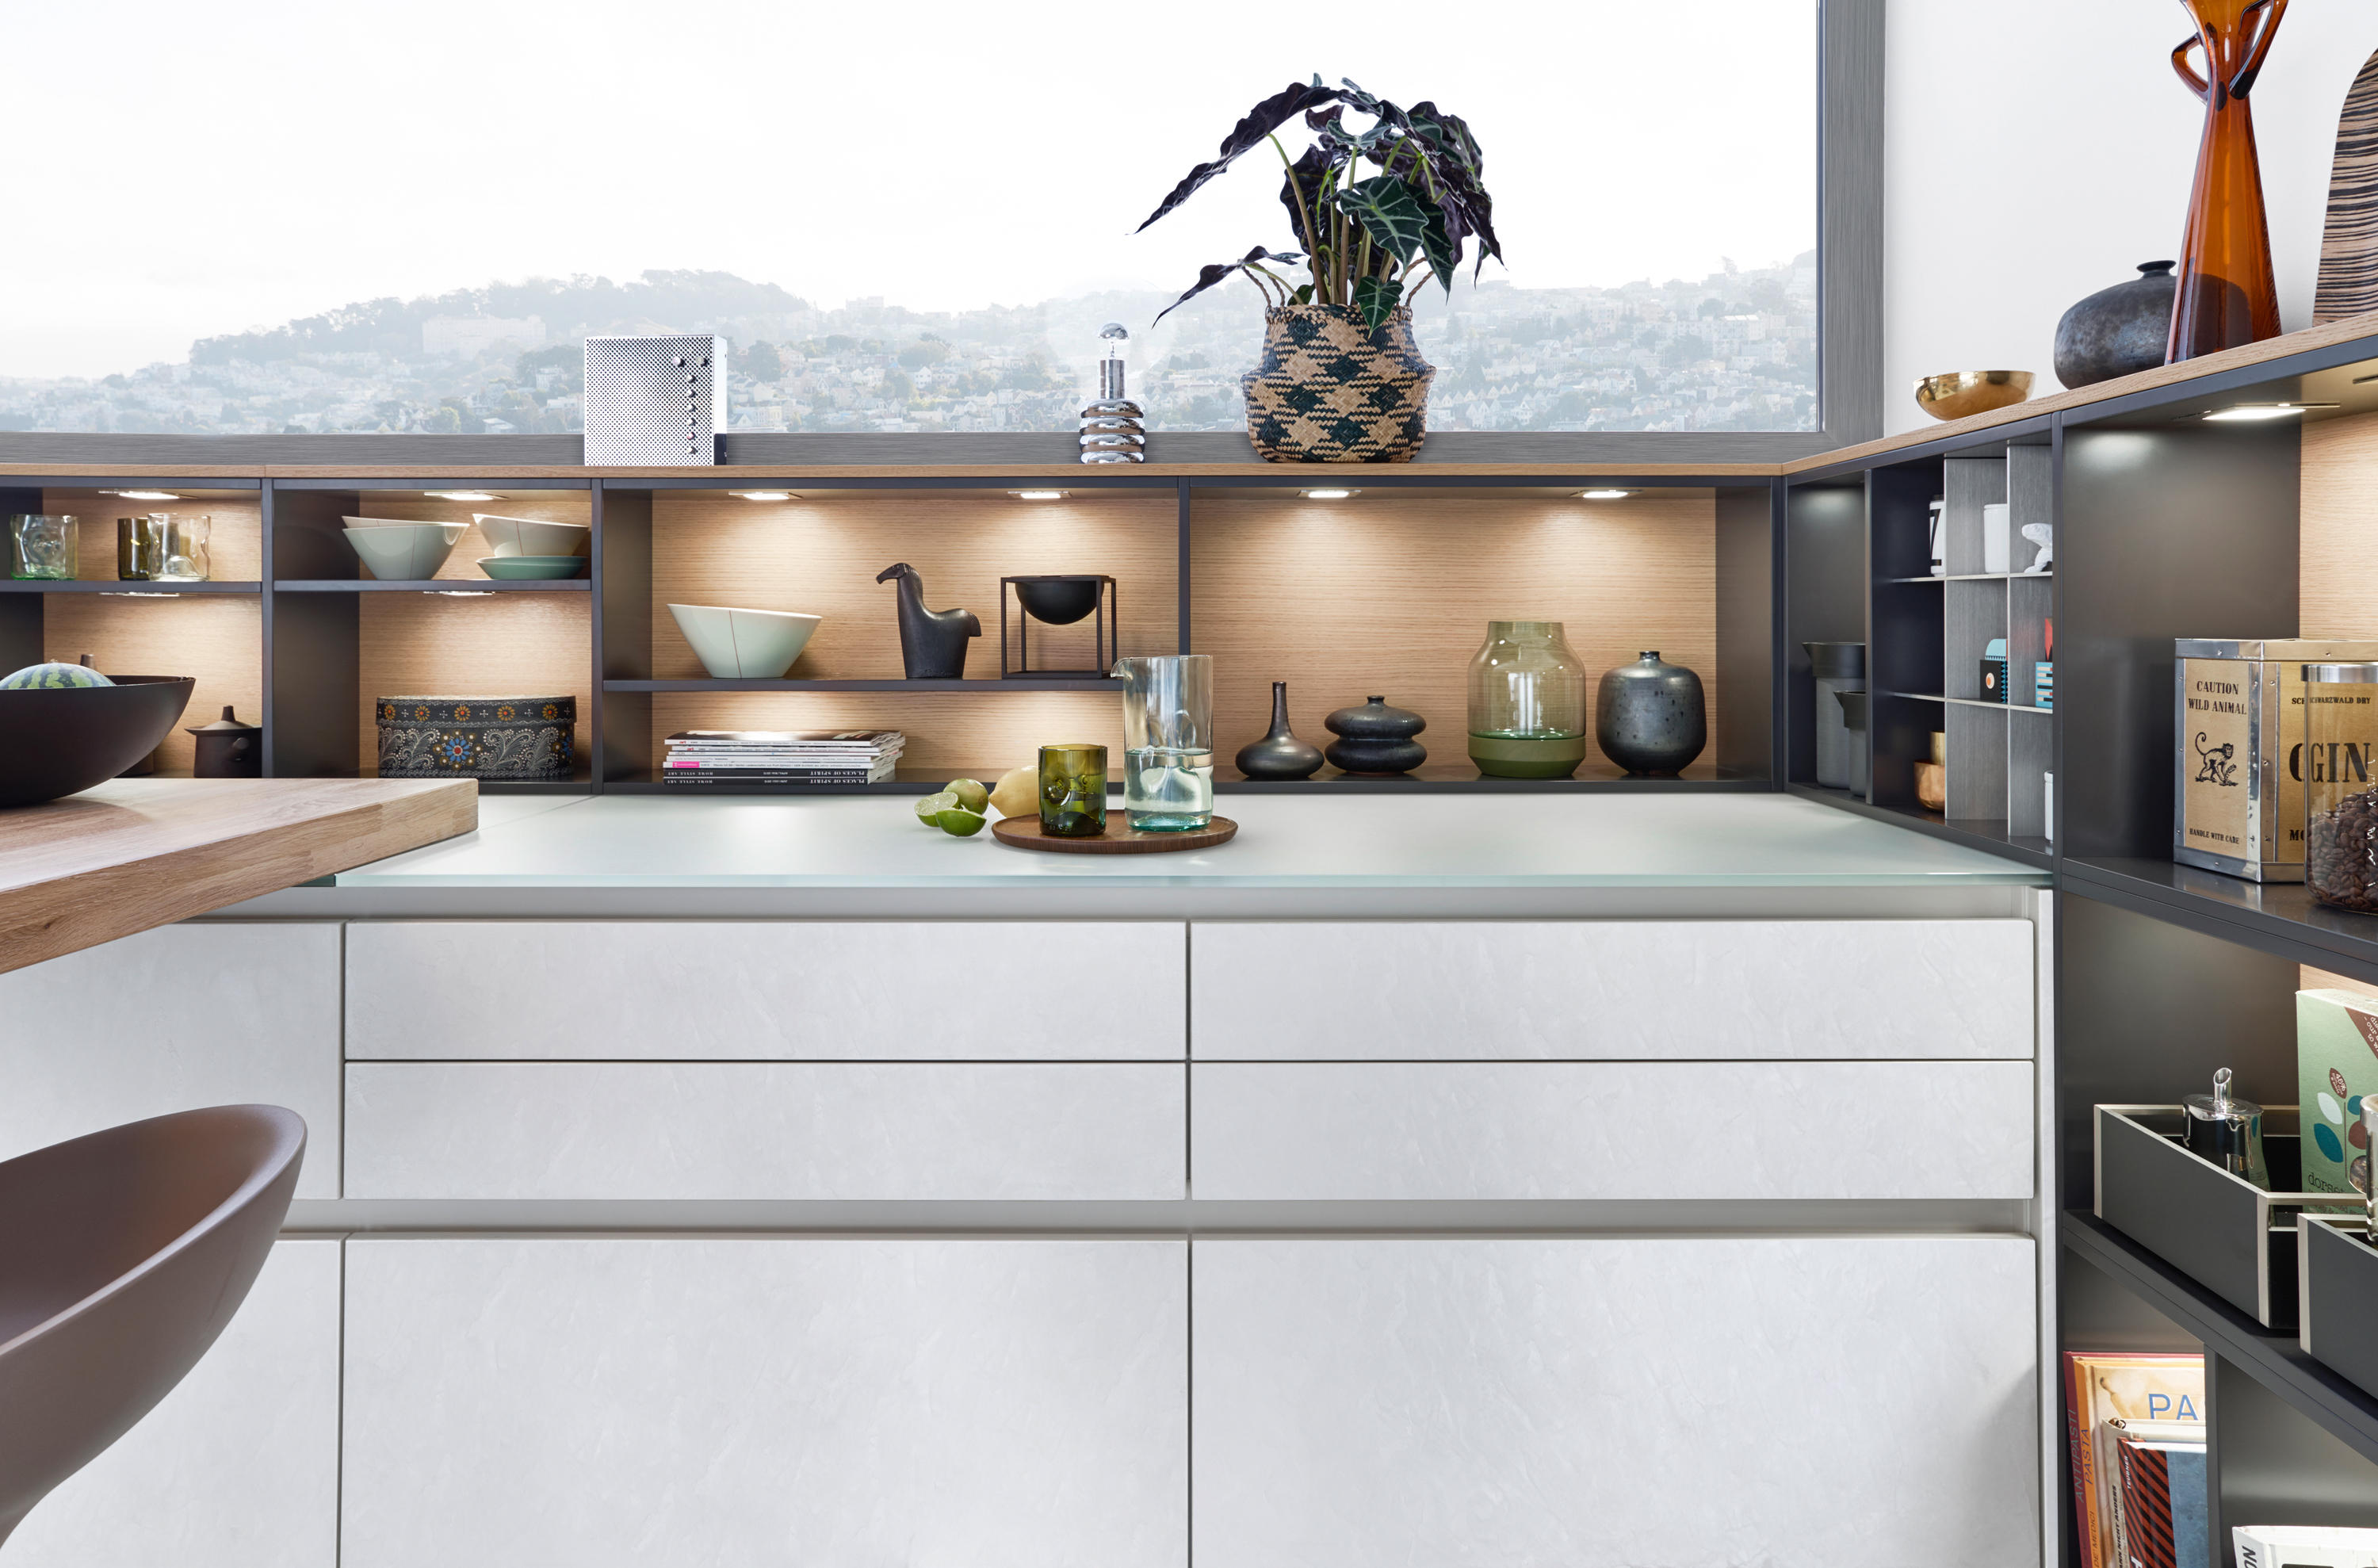 CLASSIC-FS | TOPOS | CONCRETE-C - Fitted kitchens from